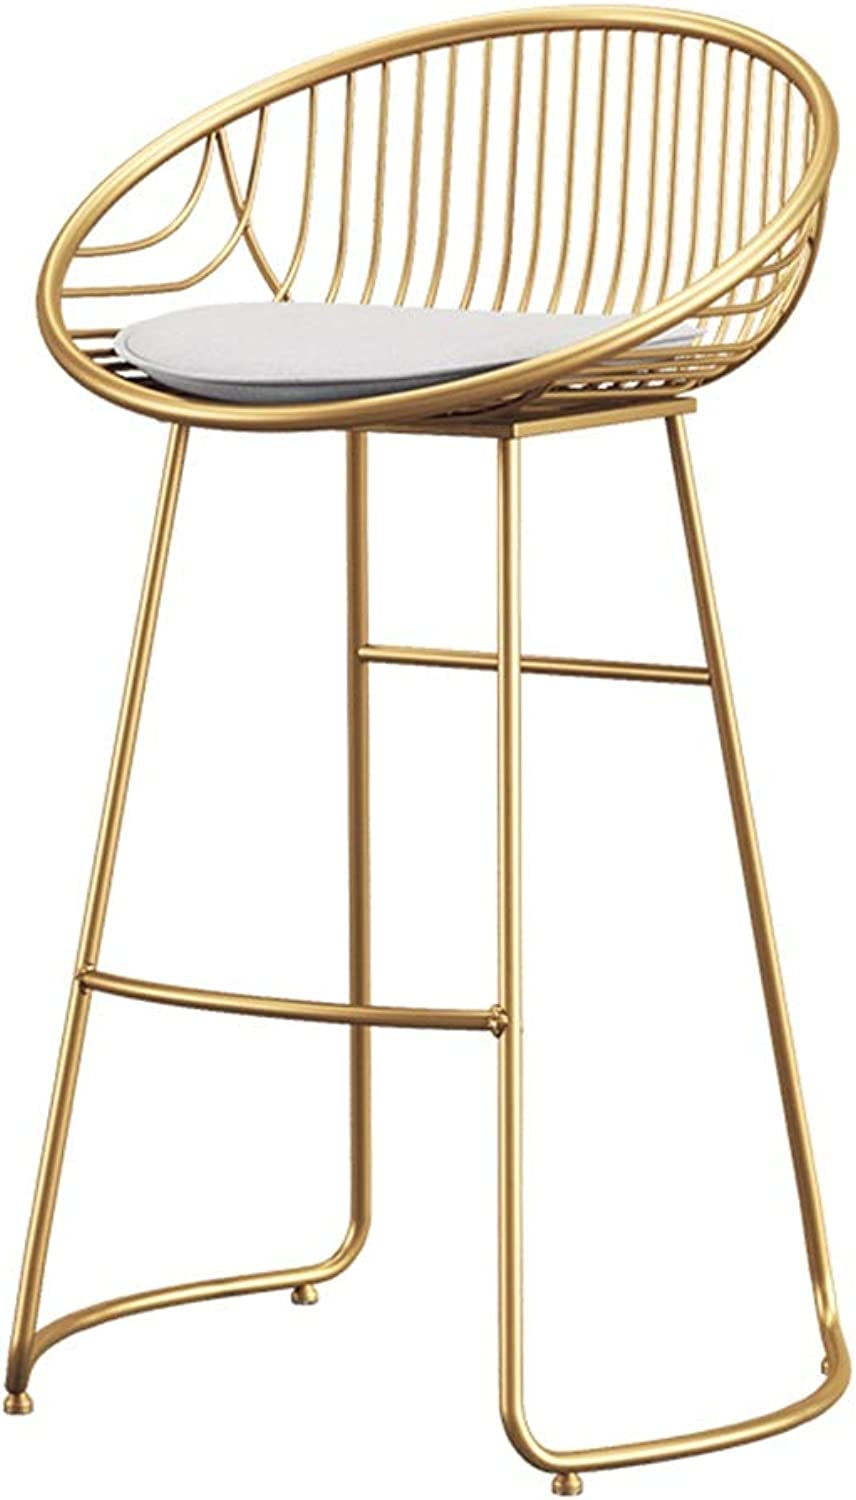 Bar Stool Simple Wrought Iron High Stool Bar Dining Table Chair Home Backrest Stool Load Capacity 250kg (color   gold, Size   43  45  45CM)